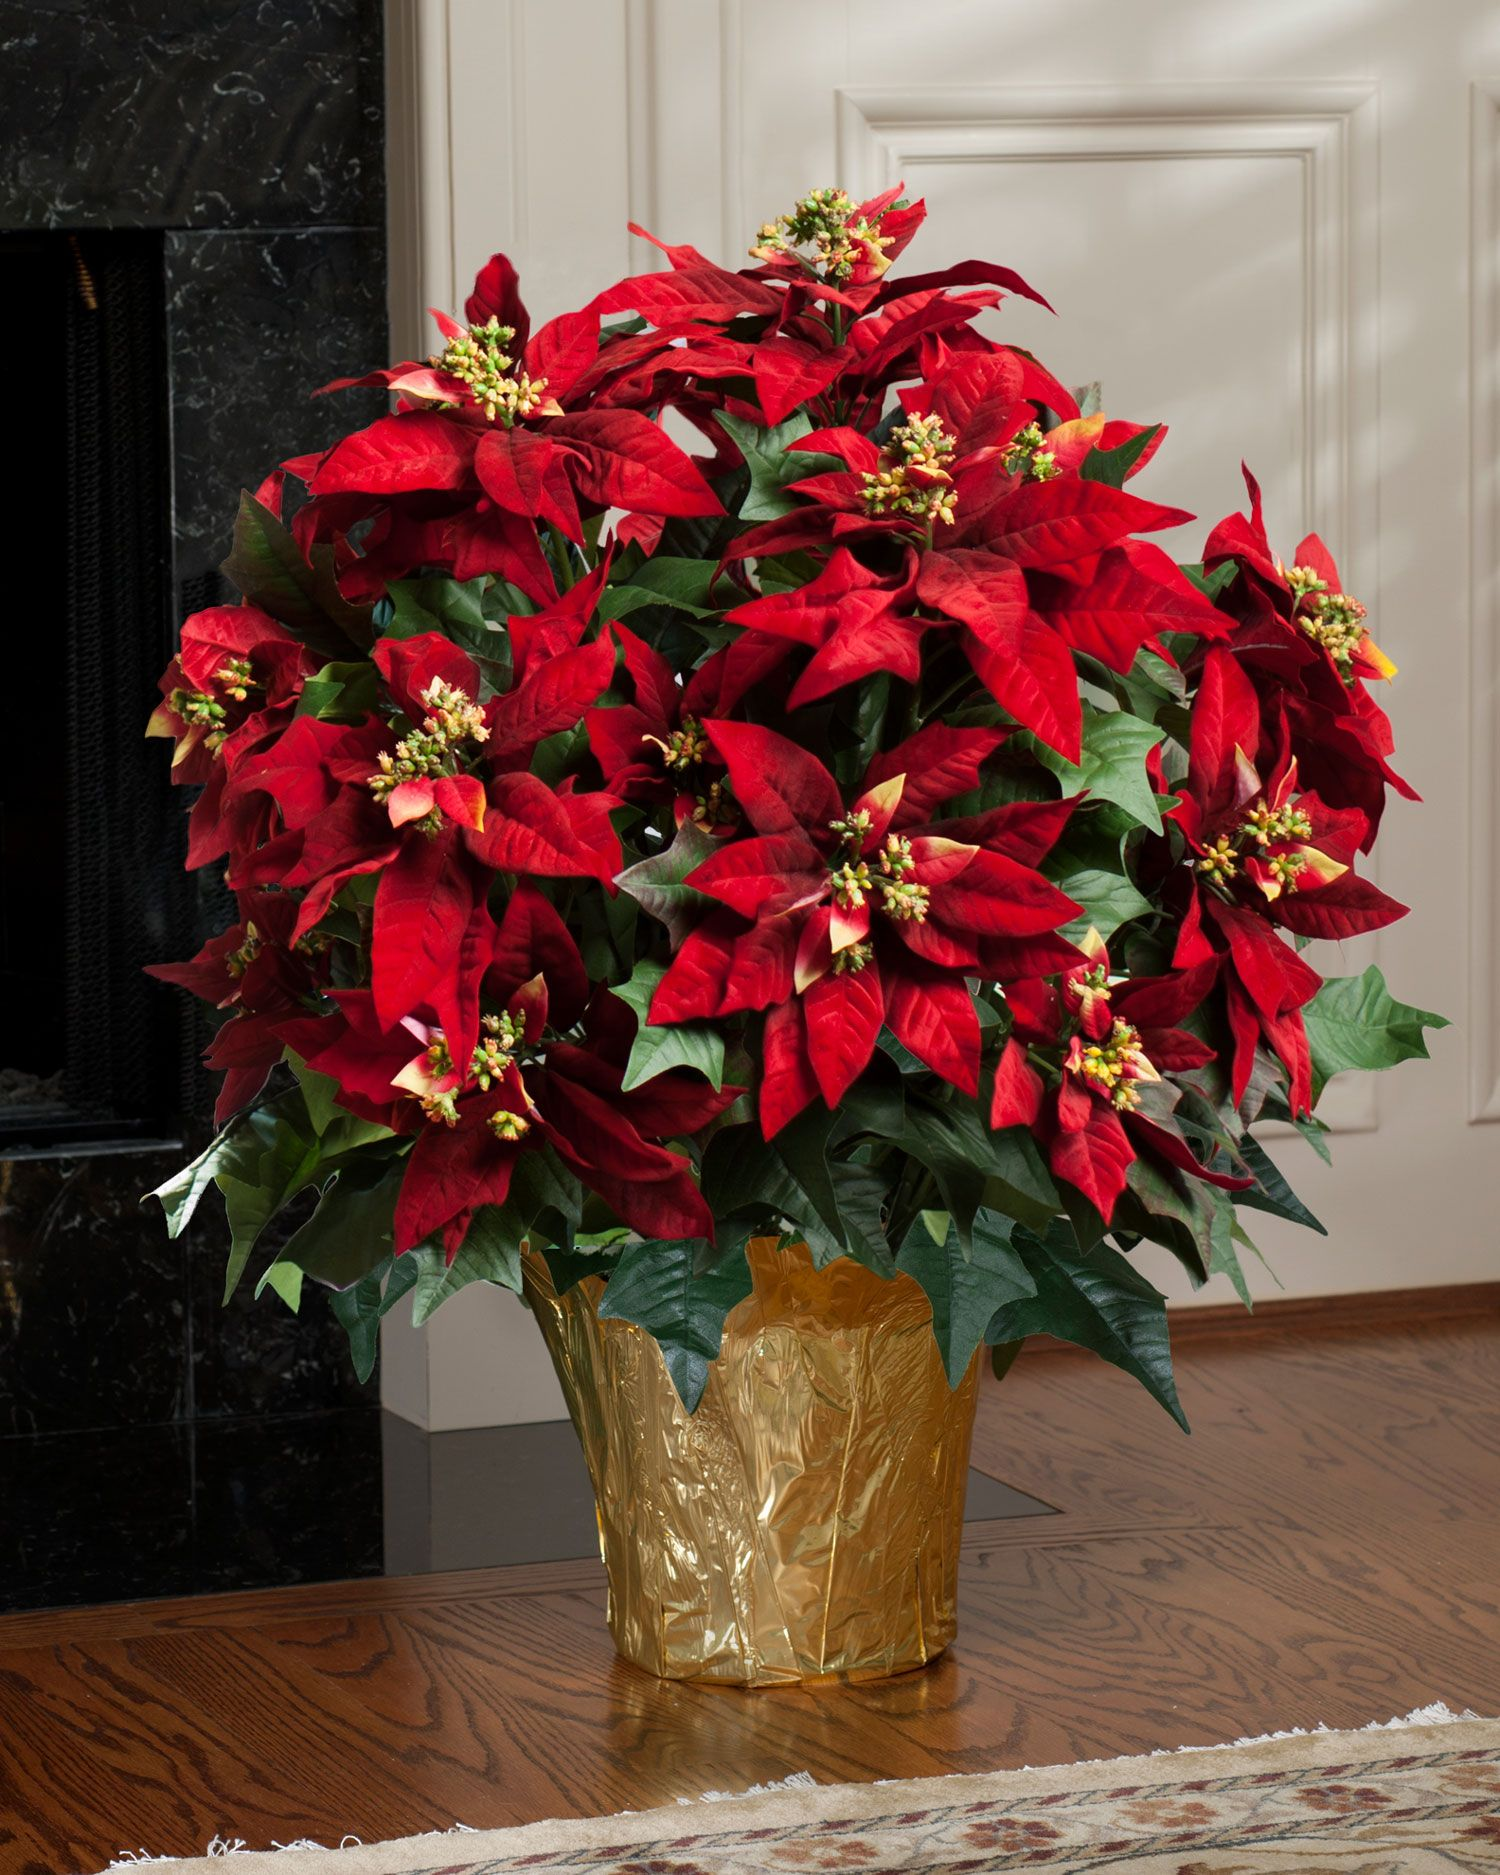 Premier silk poinsettia extra large red poinsettia and for Poinsettia arrangements